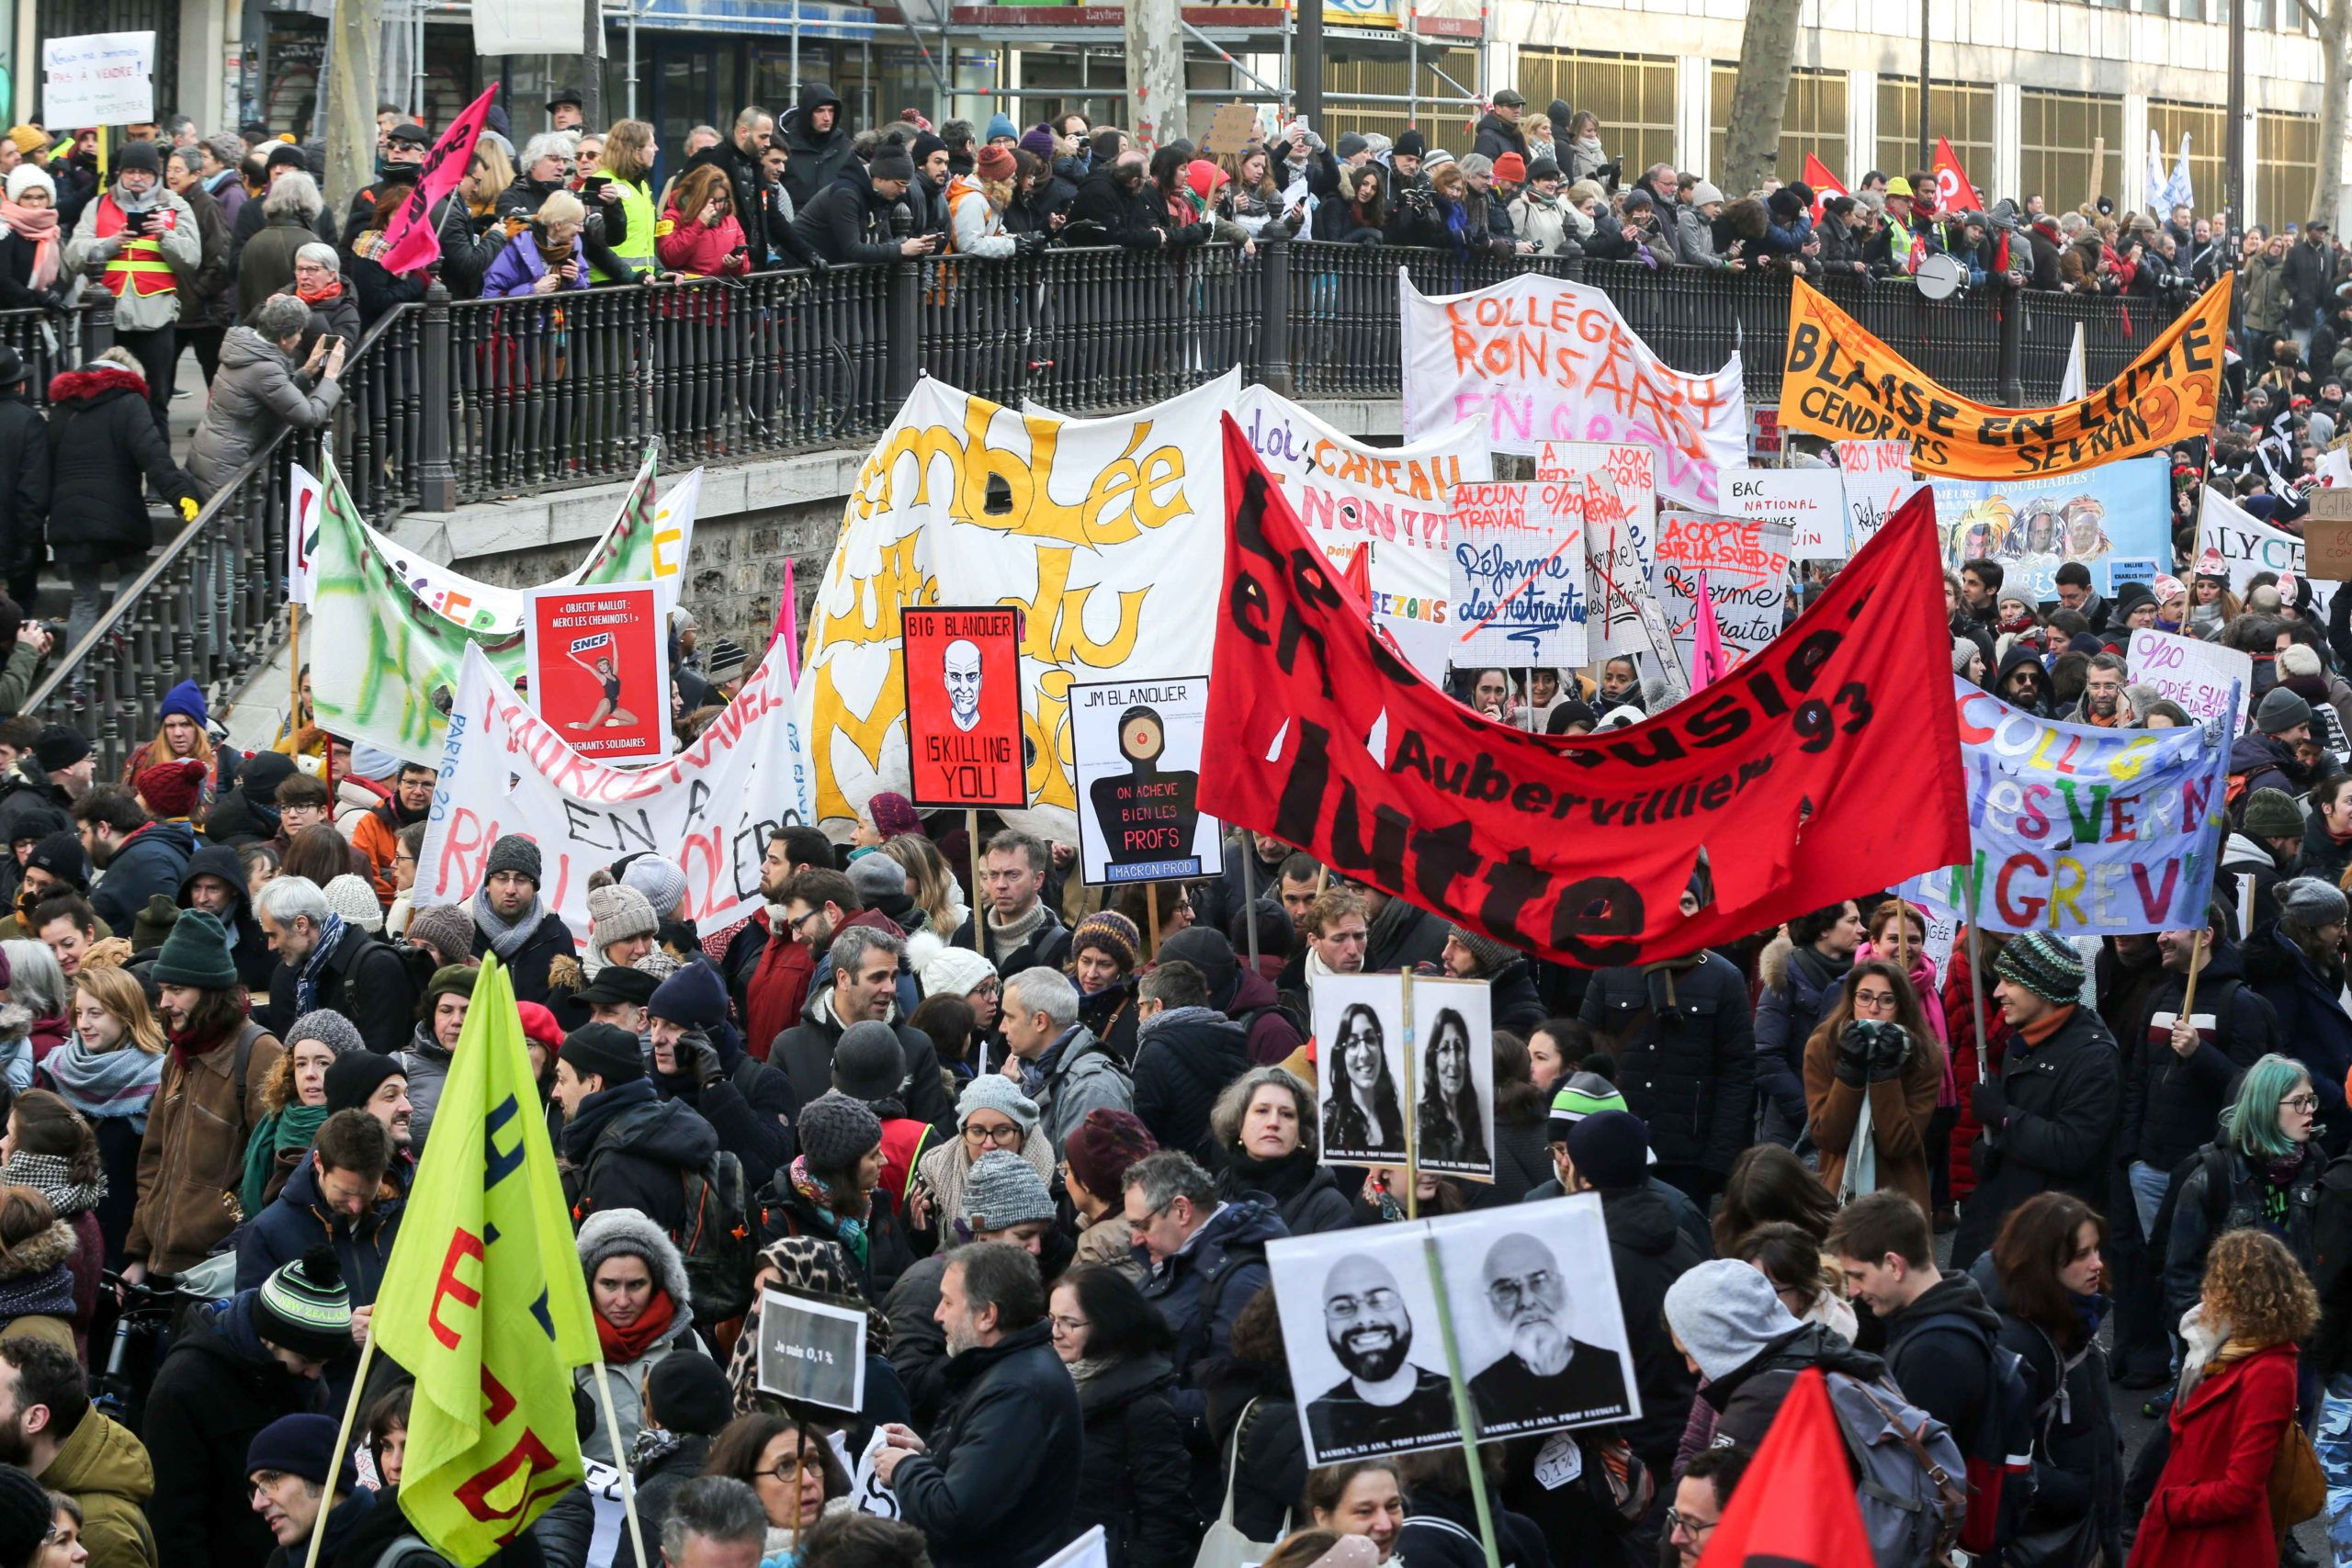 Protesters march in a street of Paris on January 24, 2020 during a demonstration against the government pensions reform, which will be officially unveiled after weeks of strikes by unions warning that millions of people will have to work longer. It will be